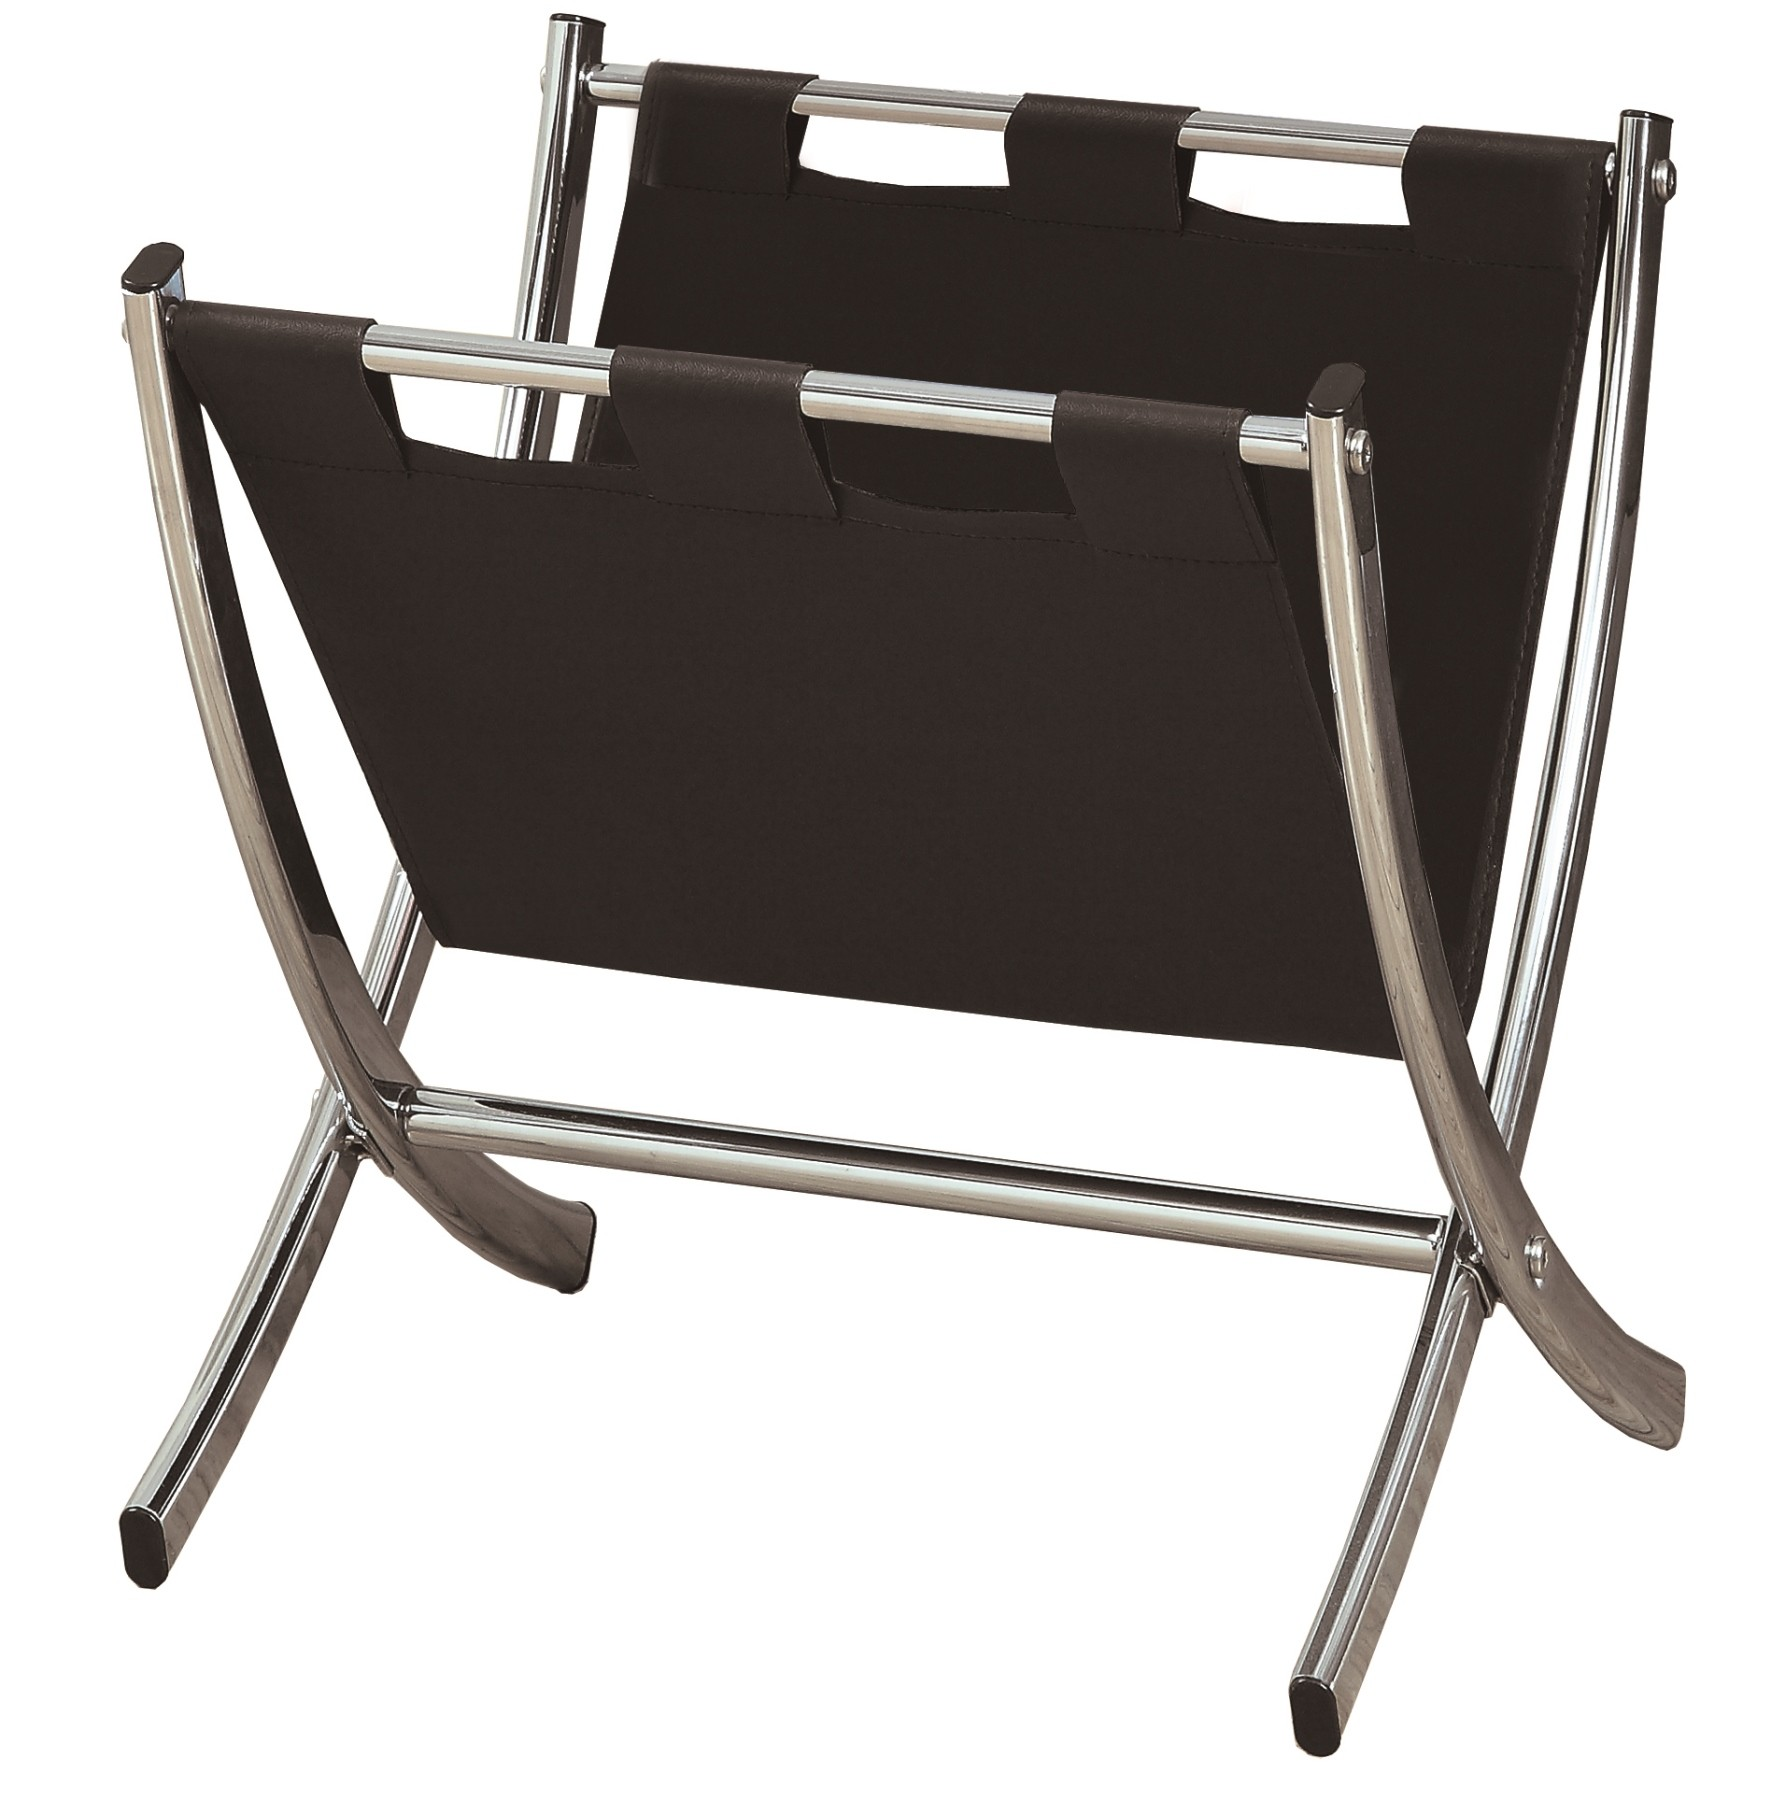 Full of modern sensibility, the Monarch Specialties Metal Magazine Rack will hold your magazines in a style that will blend with your contemporary decor. Constructed out of perforated metal, this rack is a practical storage solution for your living space.